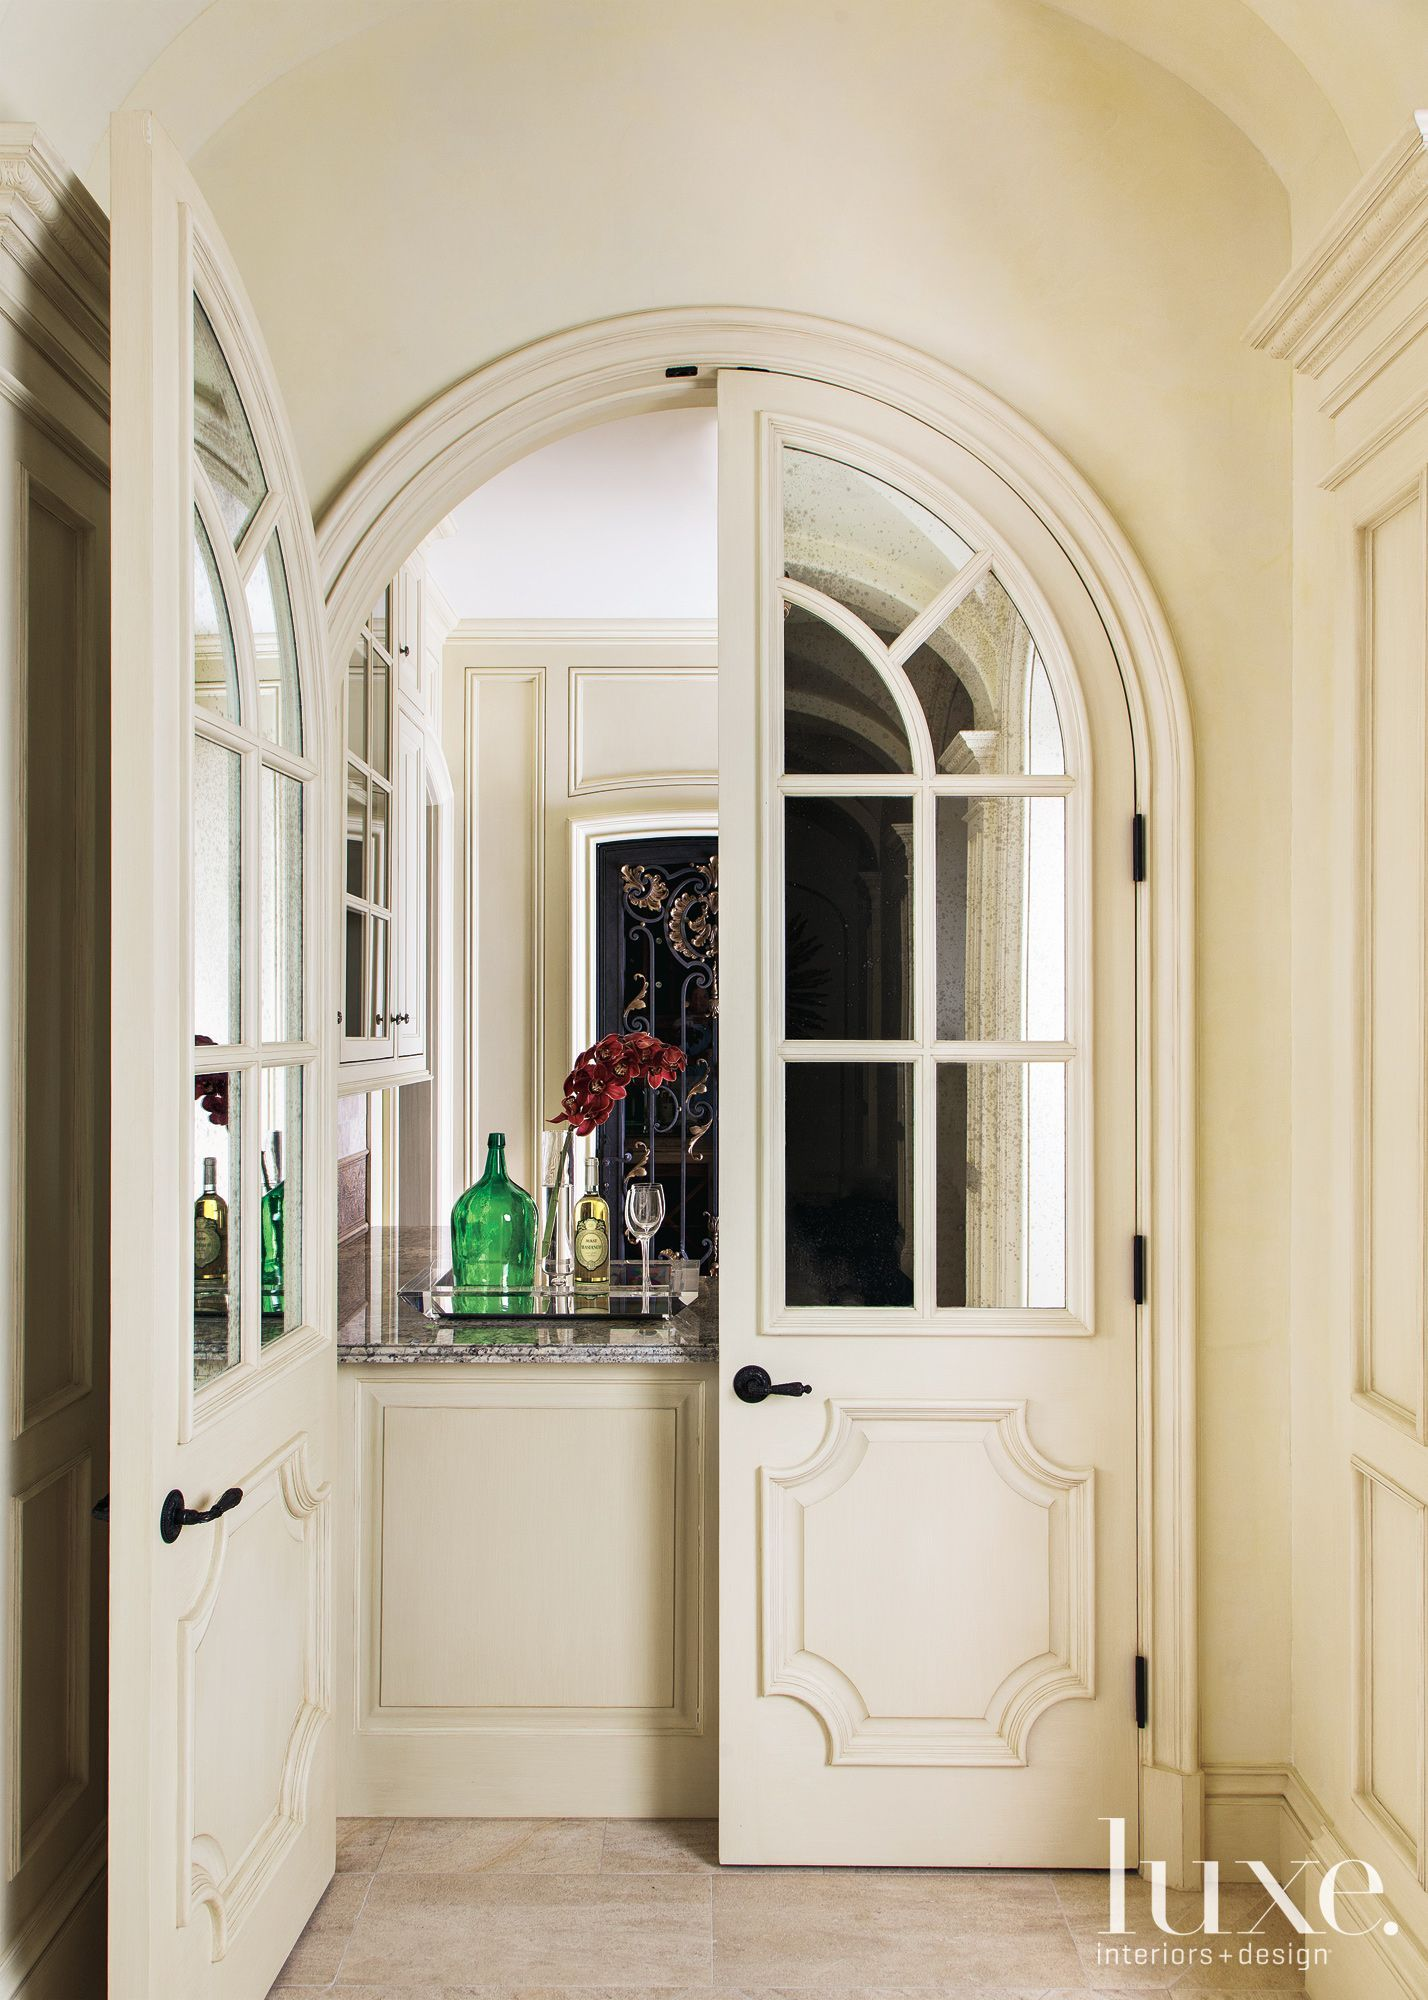 Stunning Doors LuxeDaily Design Insight From The Editors Of - Arched interior doorway design decoration